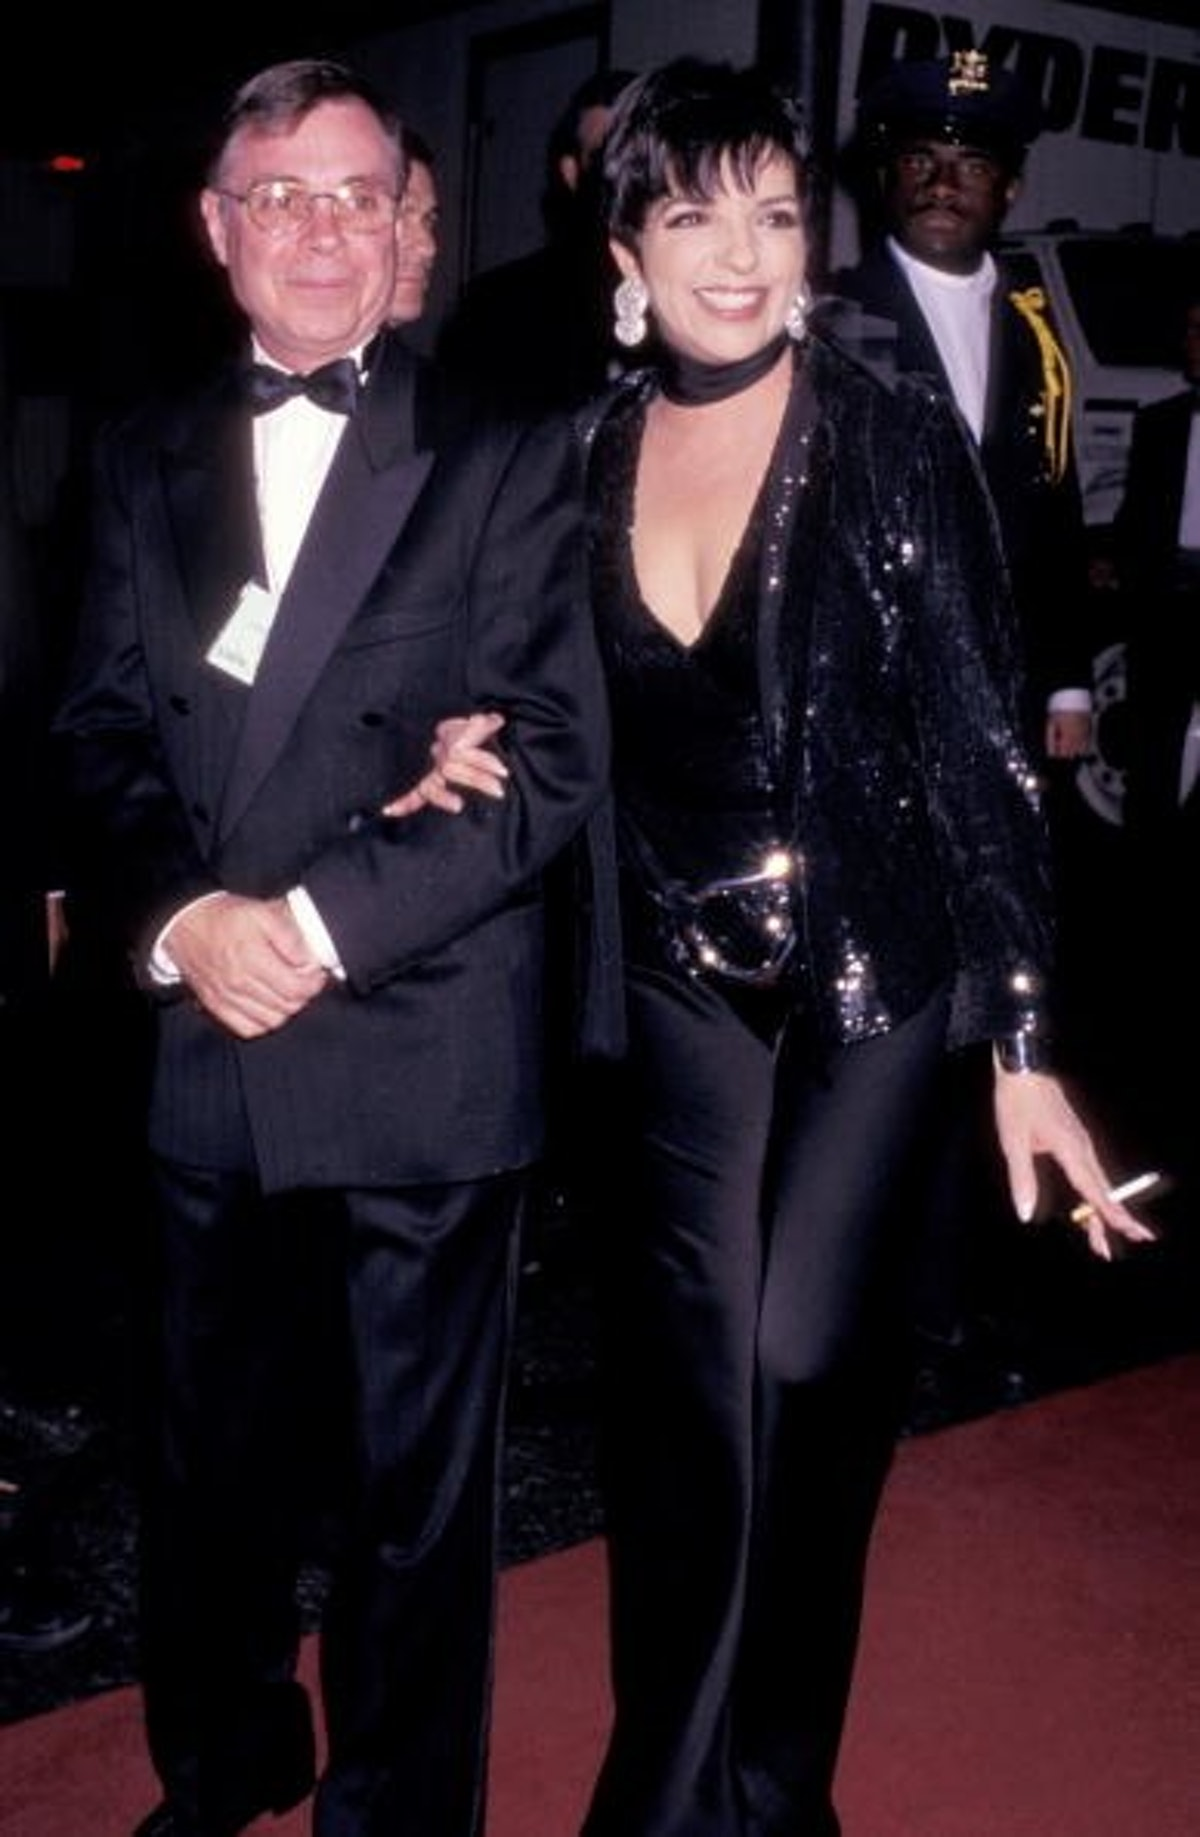 Liza wears all black look with deep cut top, wide legged pants, and a sequin blazer